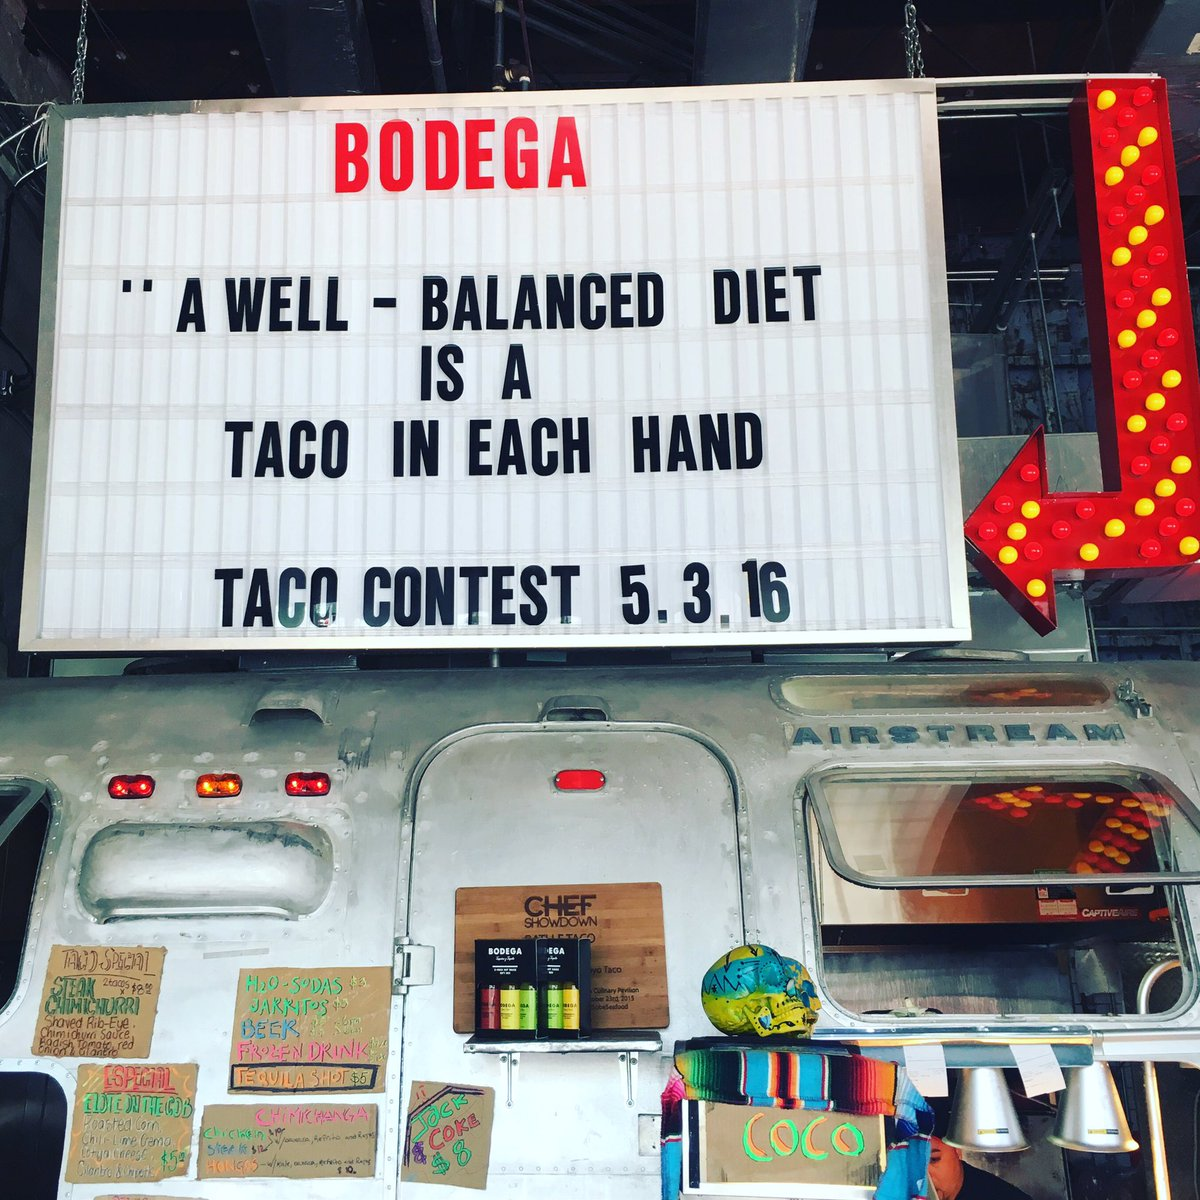 Achieving balance with @szeliu at Bodega South Beach! #TacoTuesday #Miami https://t.co/mMY67PtwZE